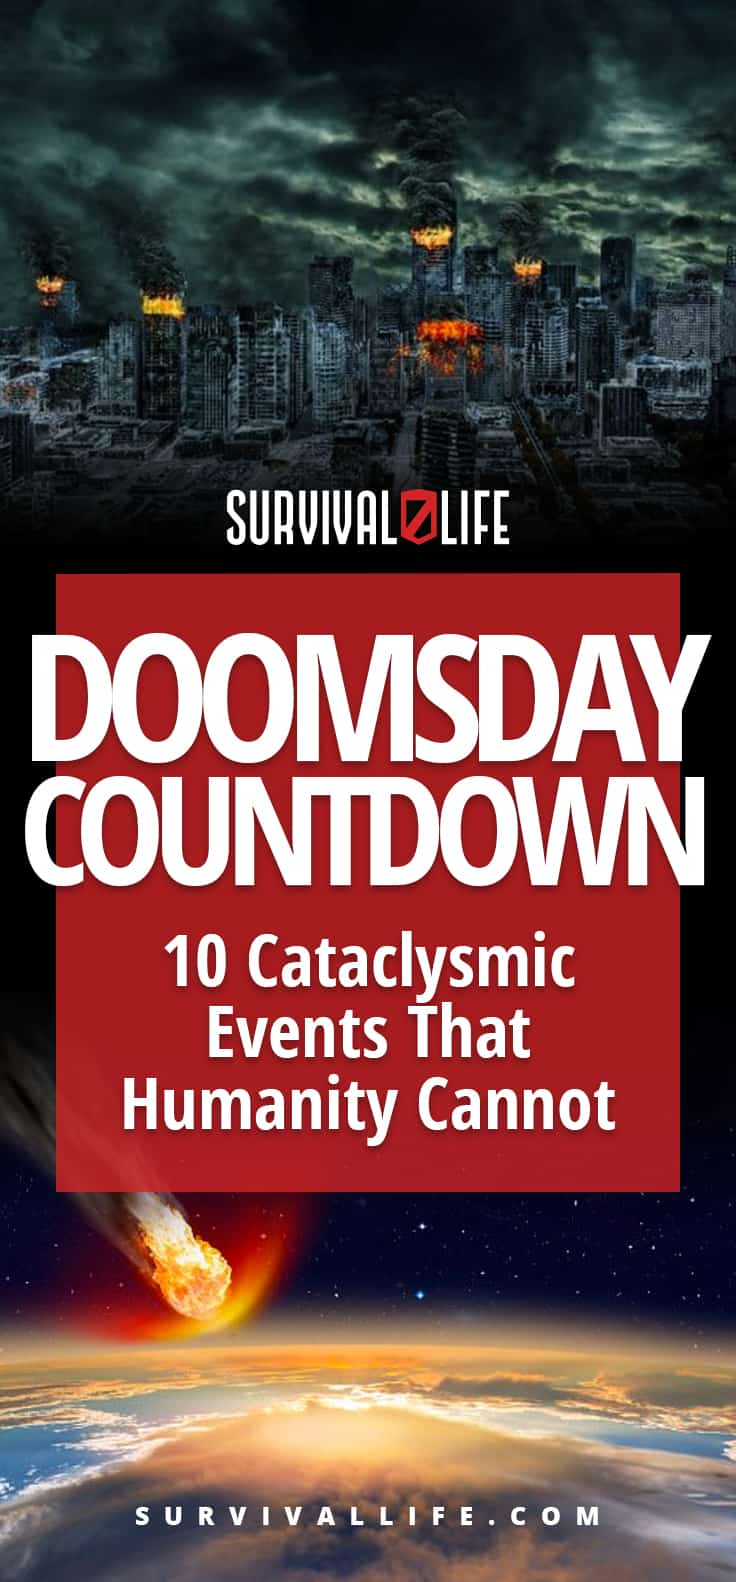 Doomsday Countdown: 10 Cataclysmic Events That Humanity Cannot Survive